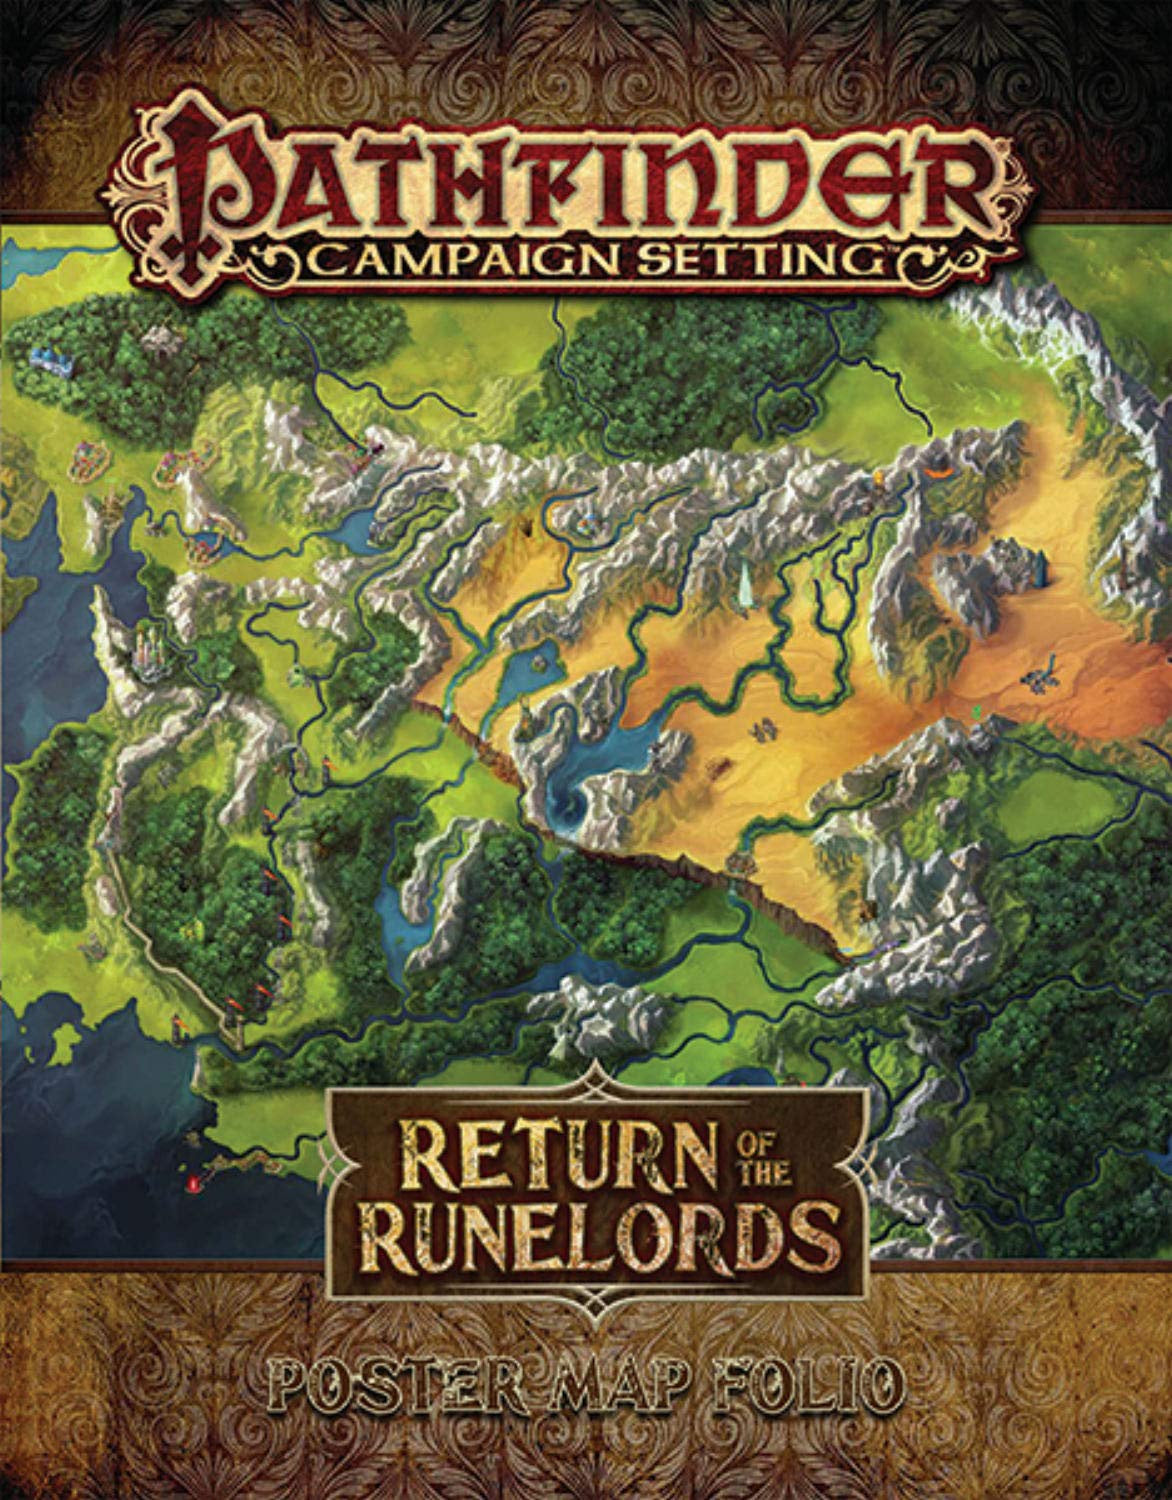 Pathfinder - Campaign Setting - Return of the Runelords Poster Map Folio